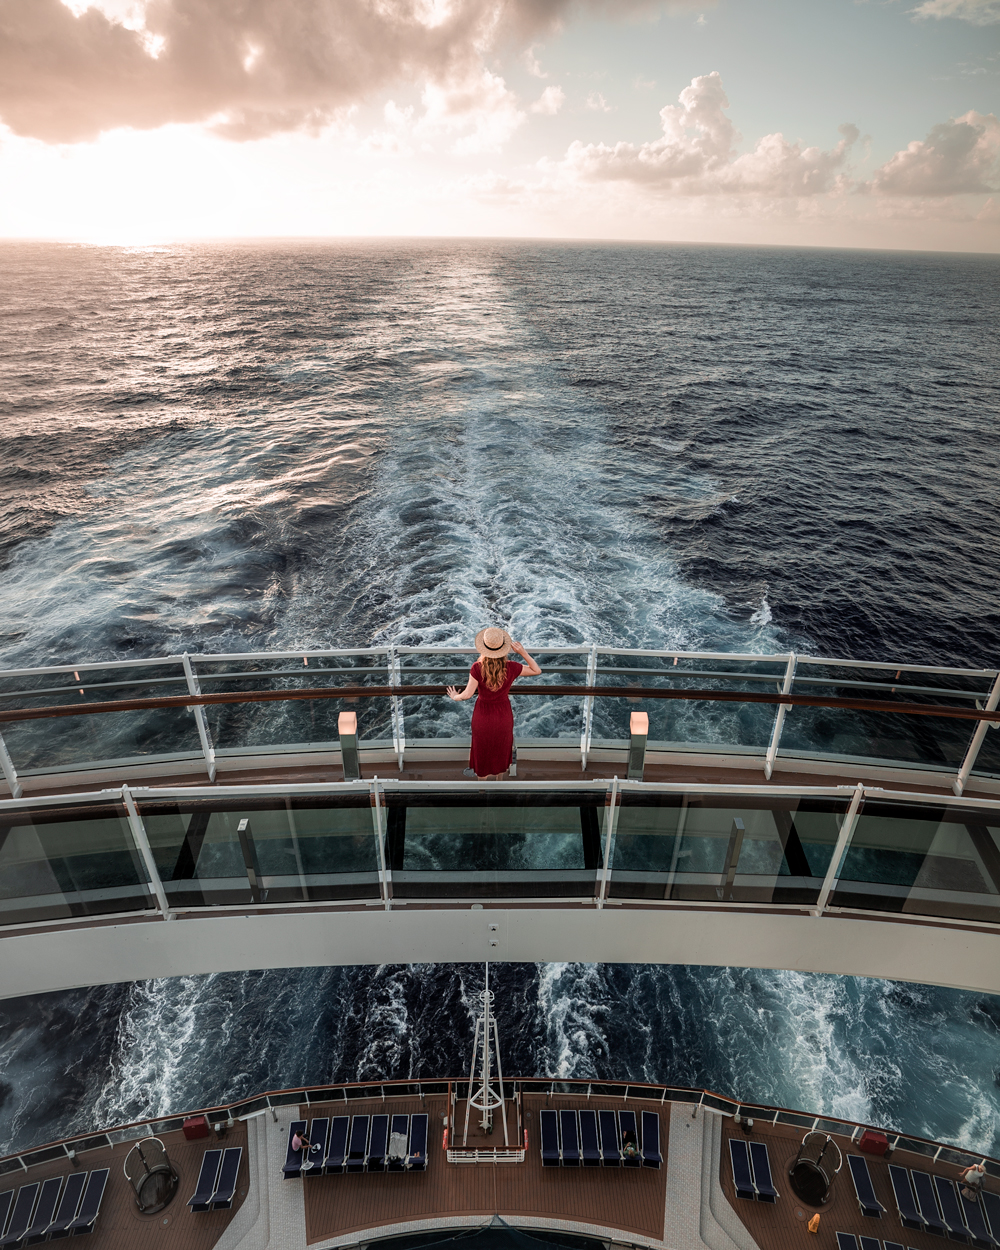 6 Reasons Why You Should Book an MSC Seaside Cruise Right Now!